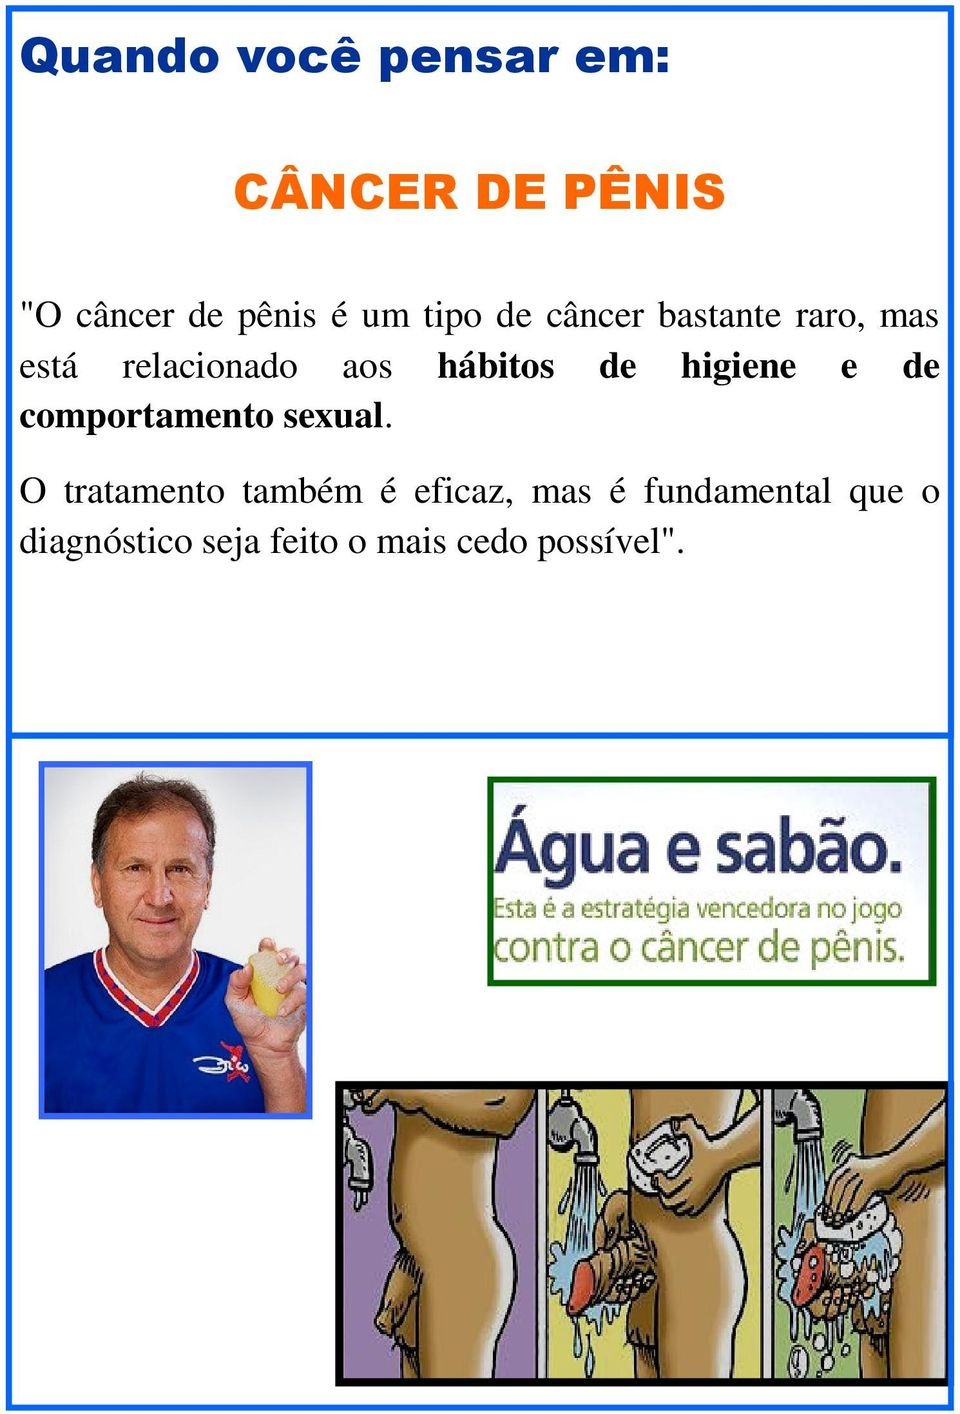 higiene e de comportamento sexual.